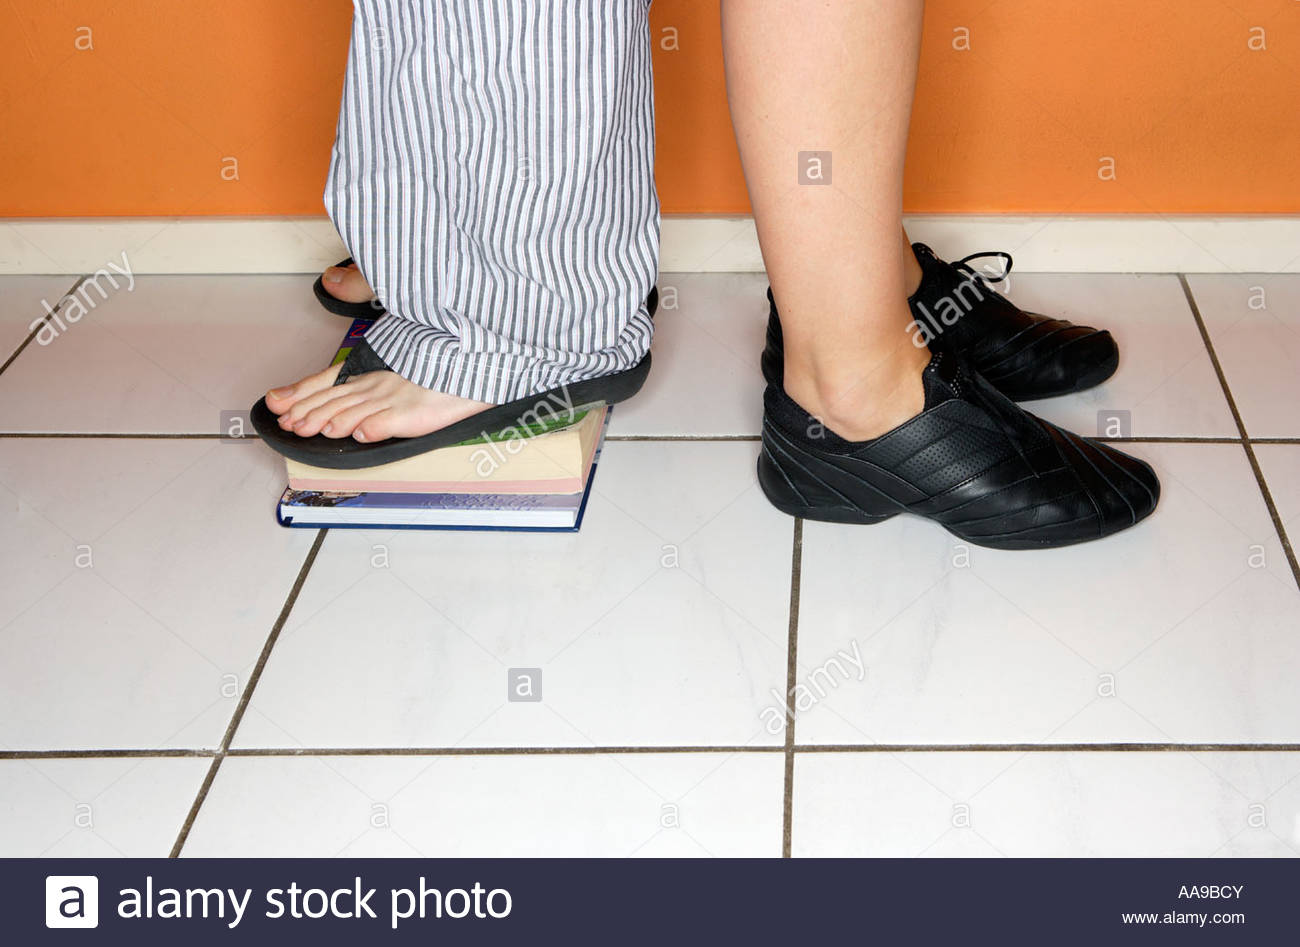 Back to back height comparison - Stock Image